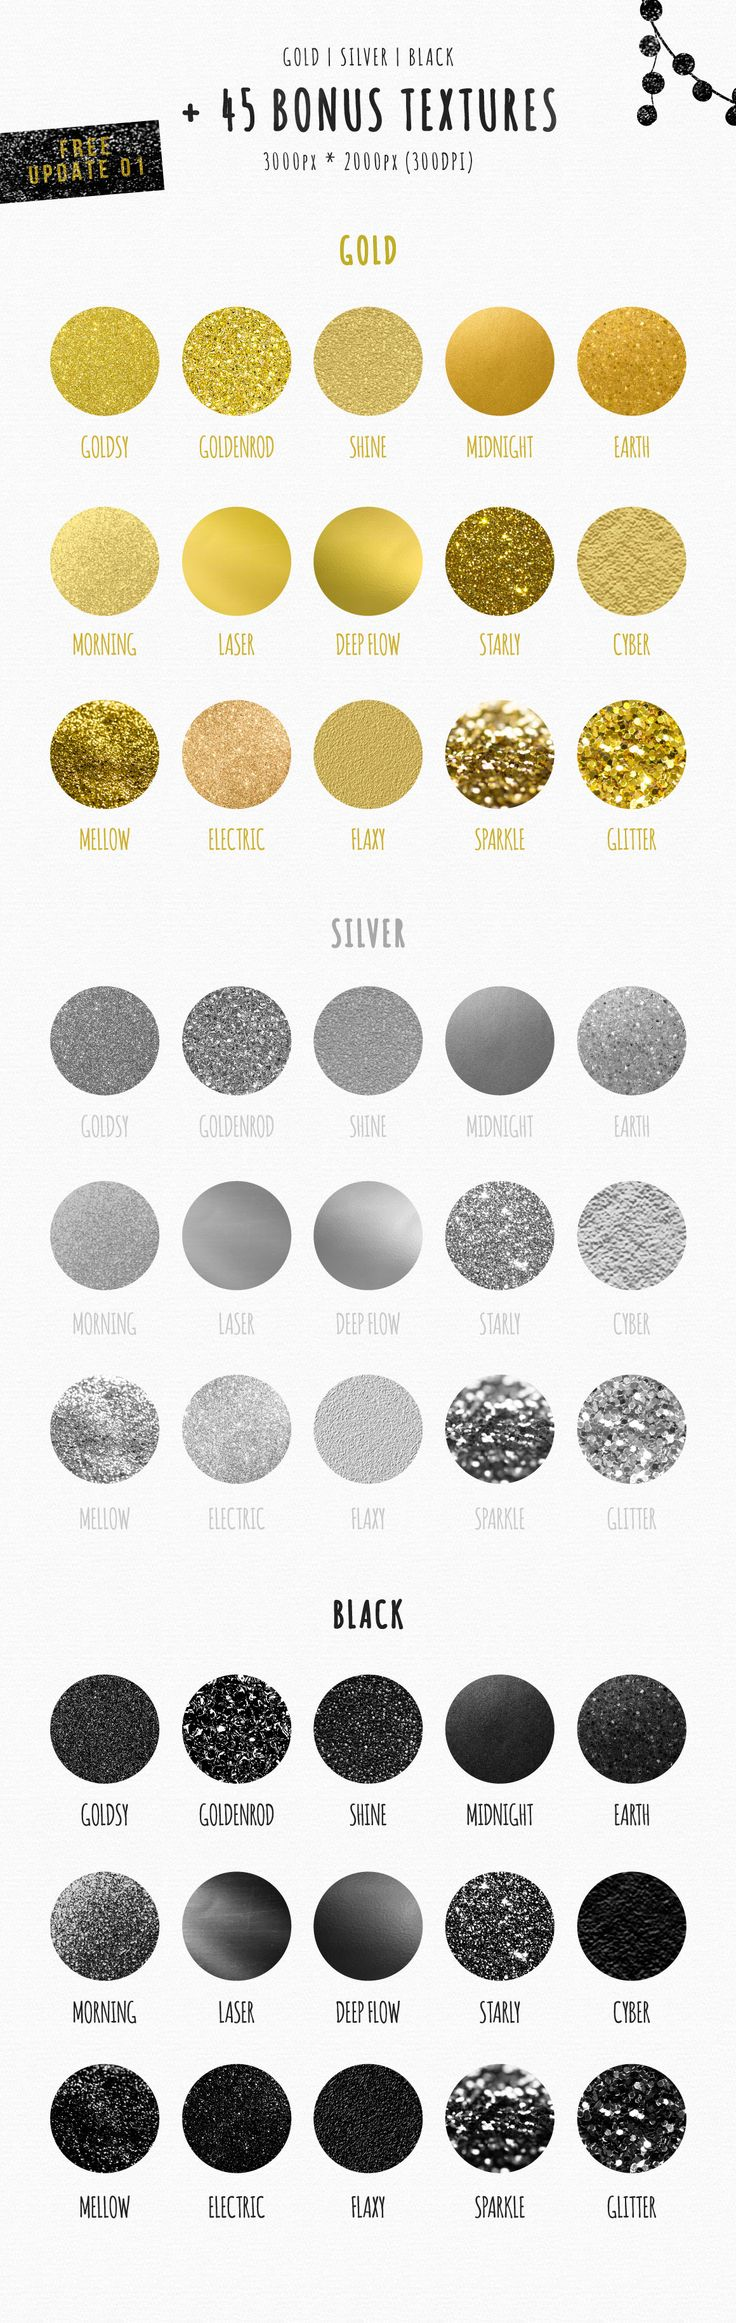 Feminine Logo Creator Circle Edition: gold foil, glitter textures, silver and black